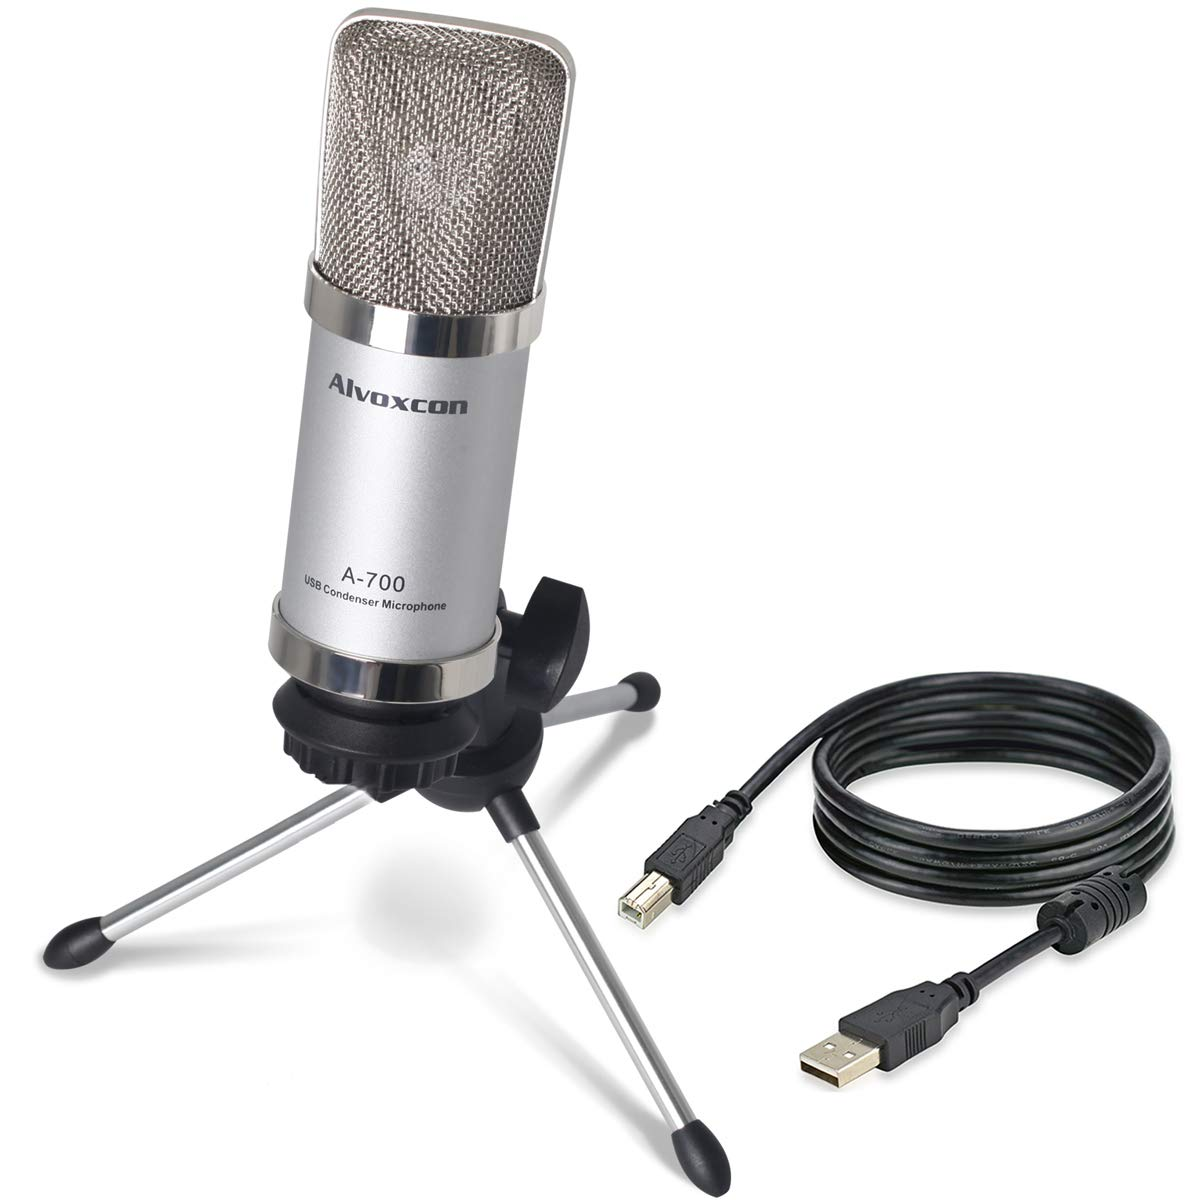 Alvoxcon USB Microphone, Unidirectional Condenser Mic for Computer, PC (Mac/Windows), Podcasting, Vlog, YouTube, Studio Recording, Skype, Stream, Voice Over, Vocal Dictation with Desktop Tripod Stand 4336300491